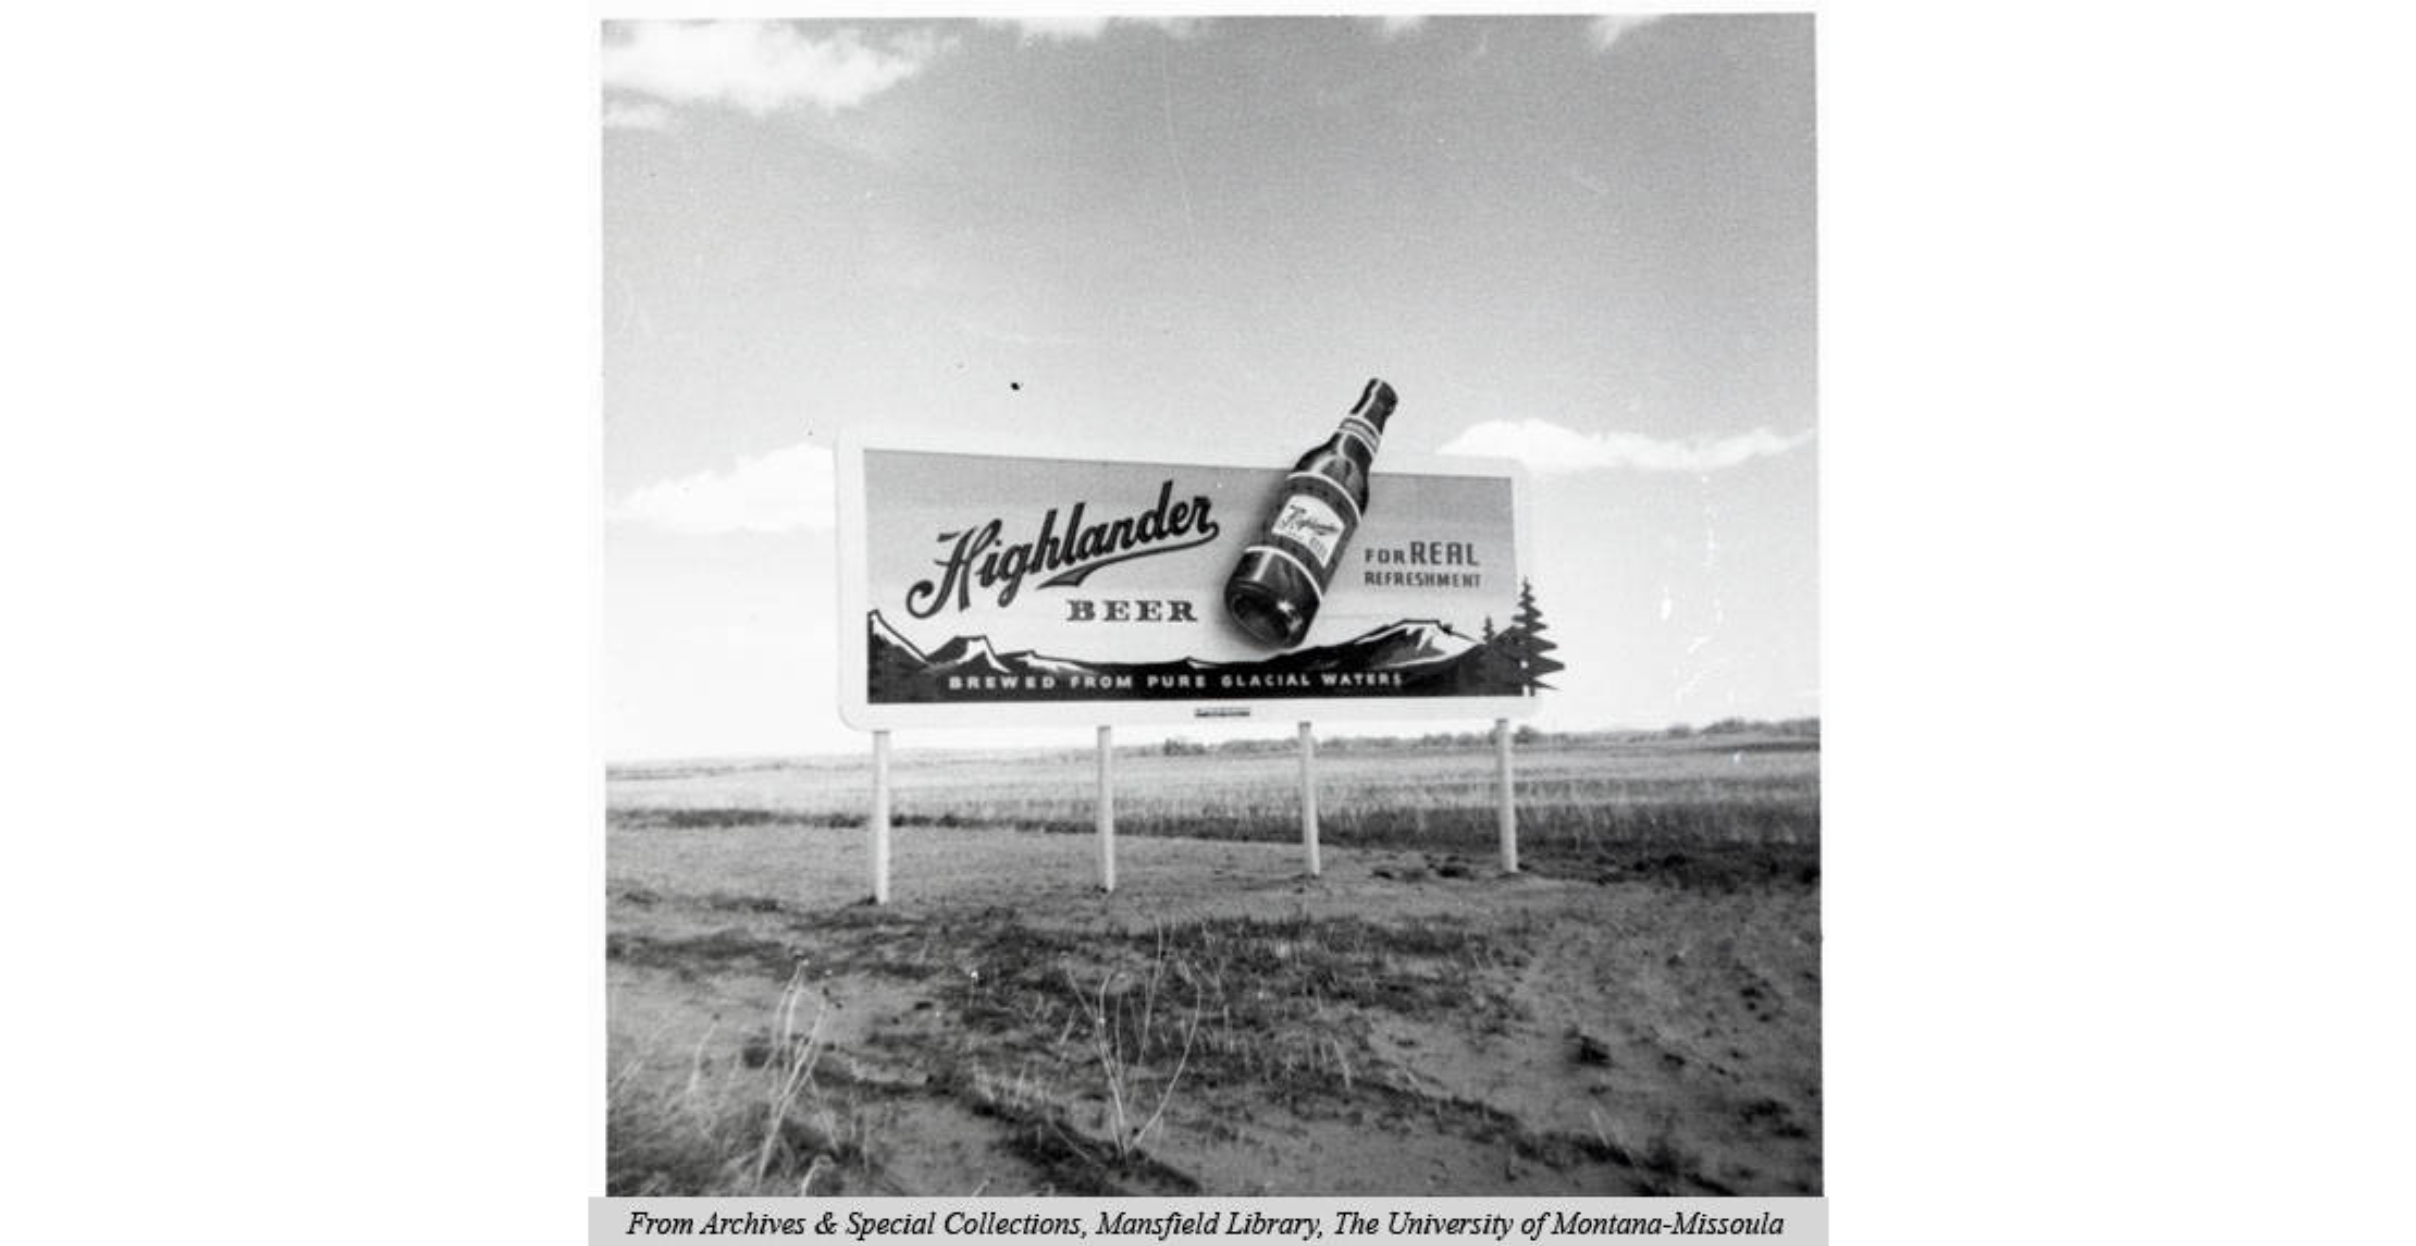 Billboard for Highlander Beer circa 1960